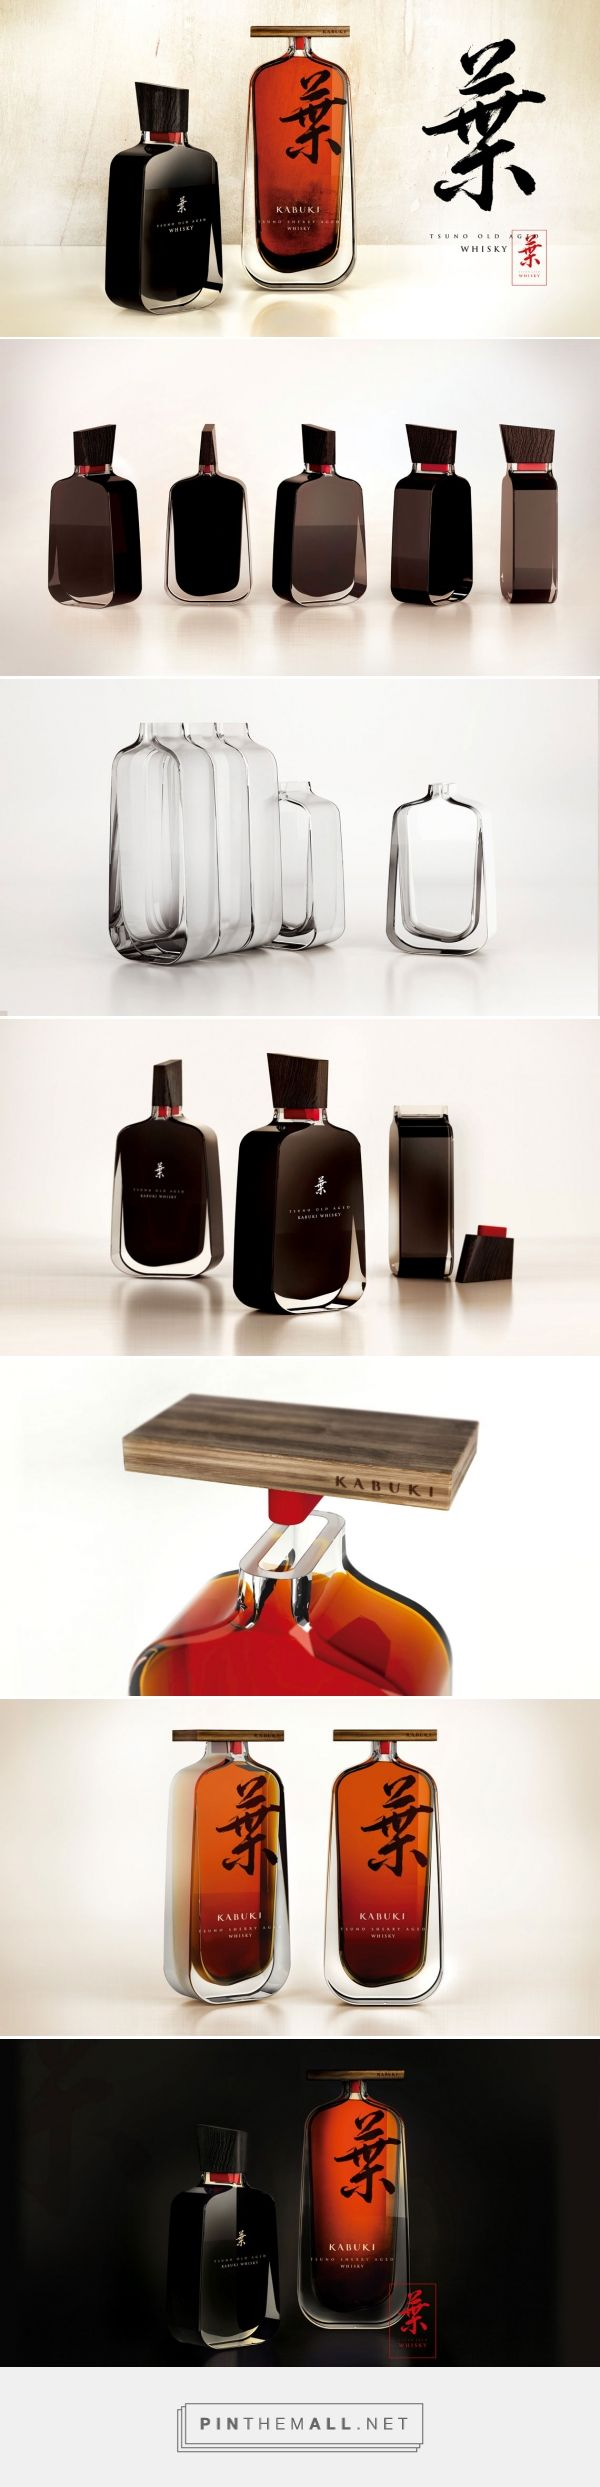 Kabuki luxury spirits packaging design concept by SeriesNemo (Spain)…